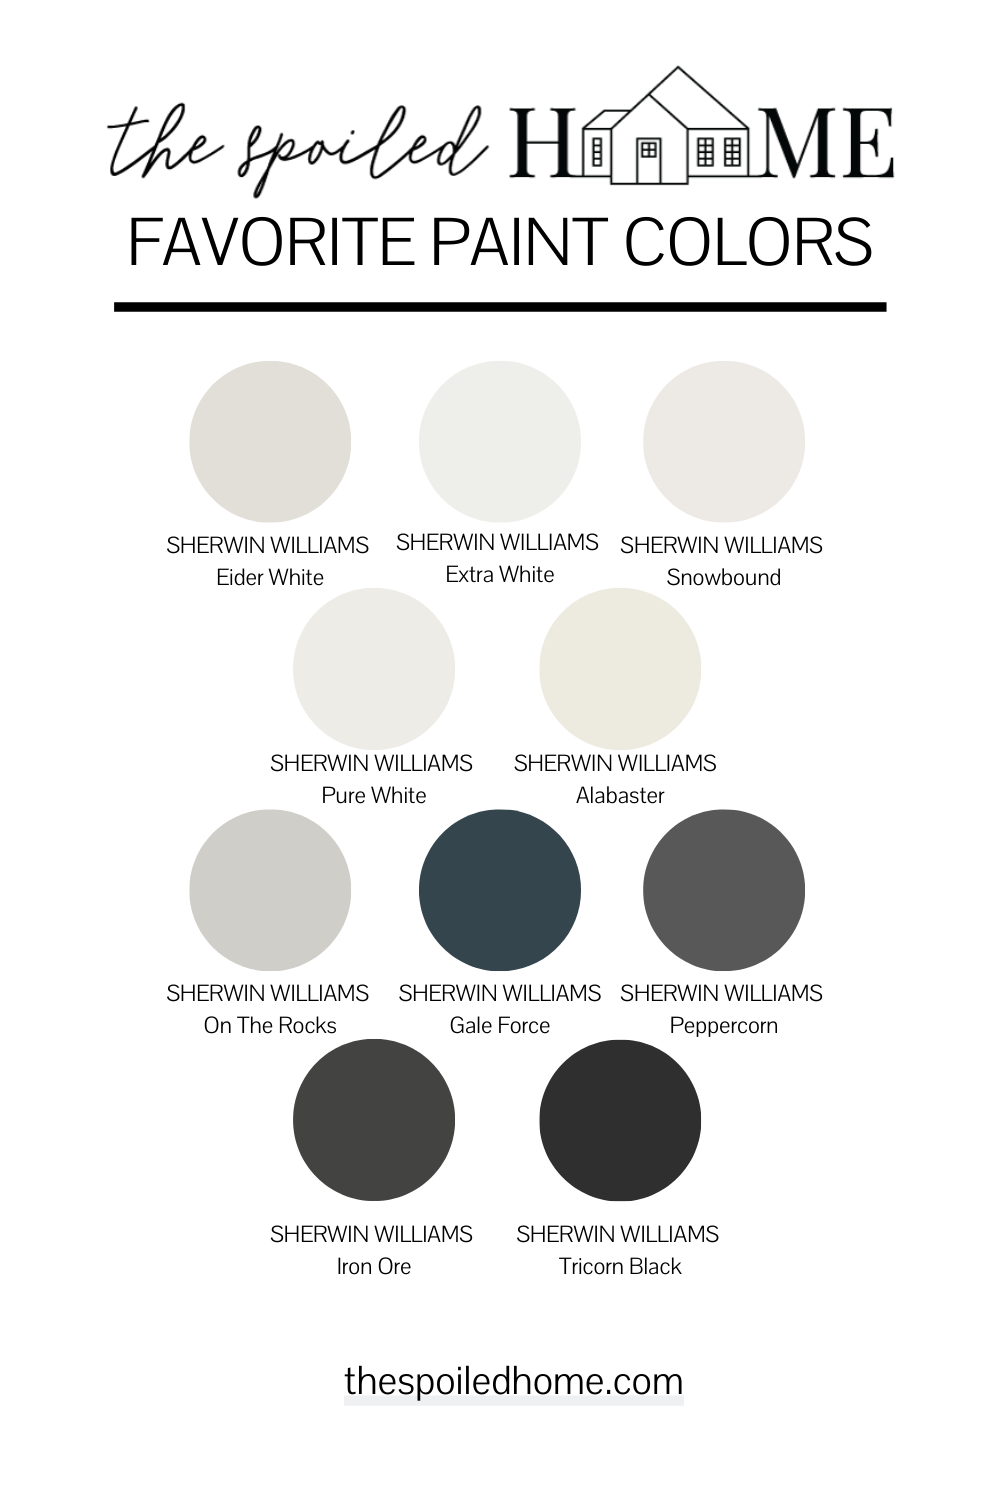 Paint Colors in Shalia's Home